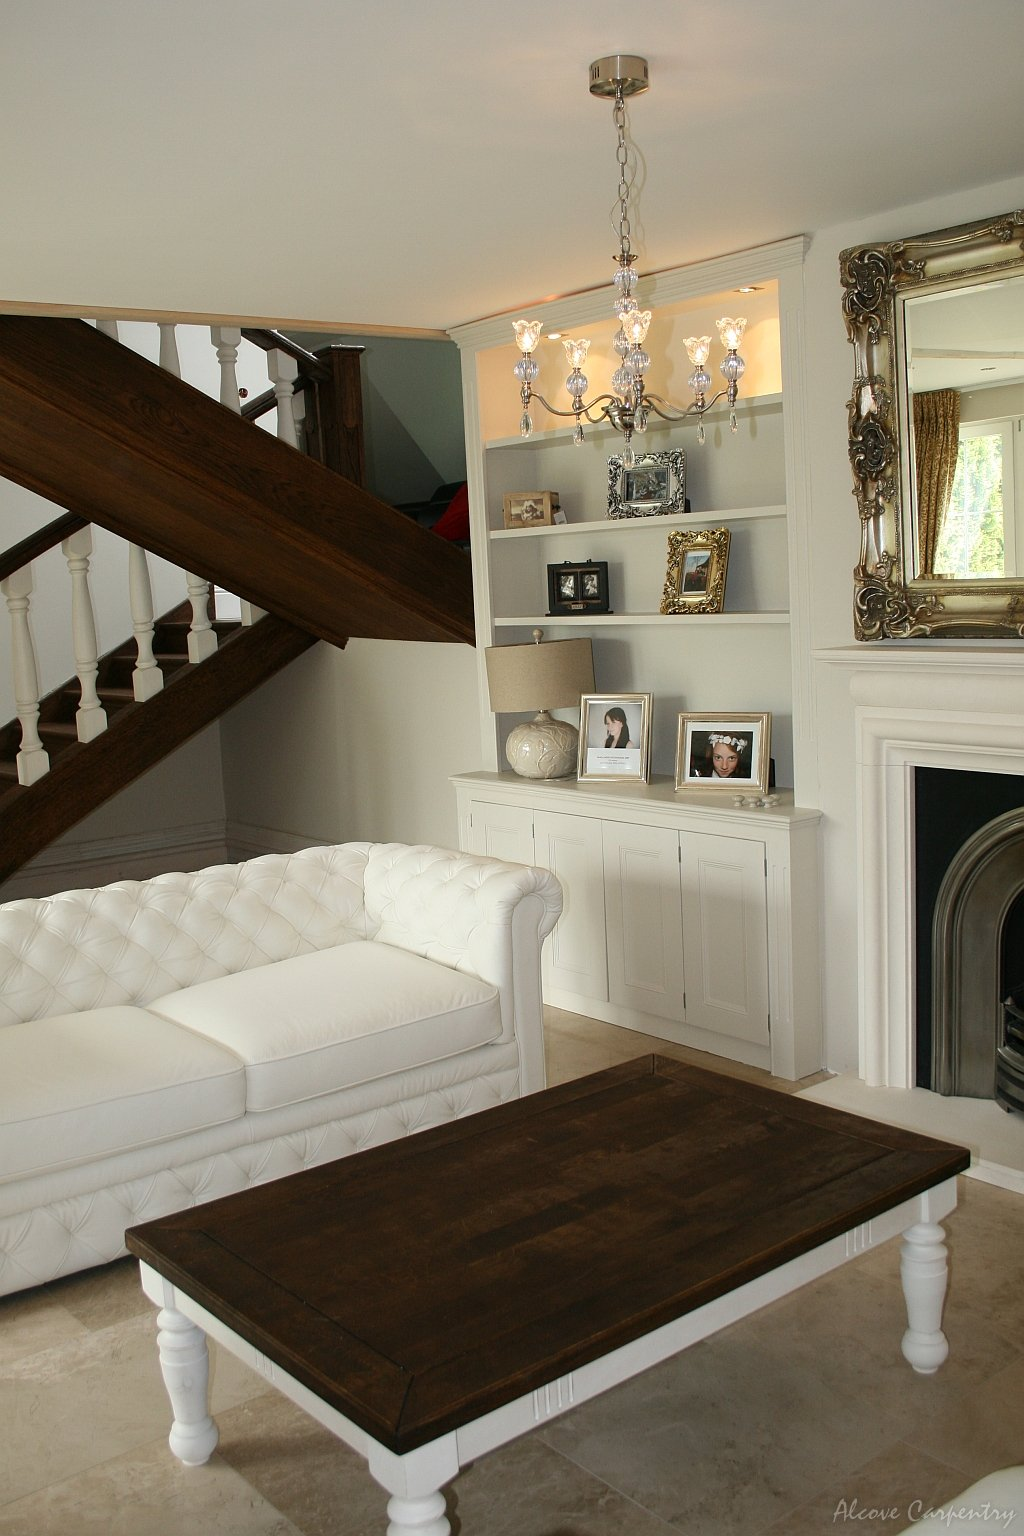 Alcove Carpentry Interior And Custom Made Furniture